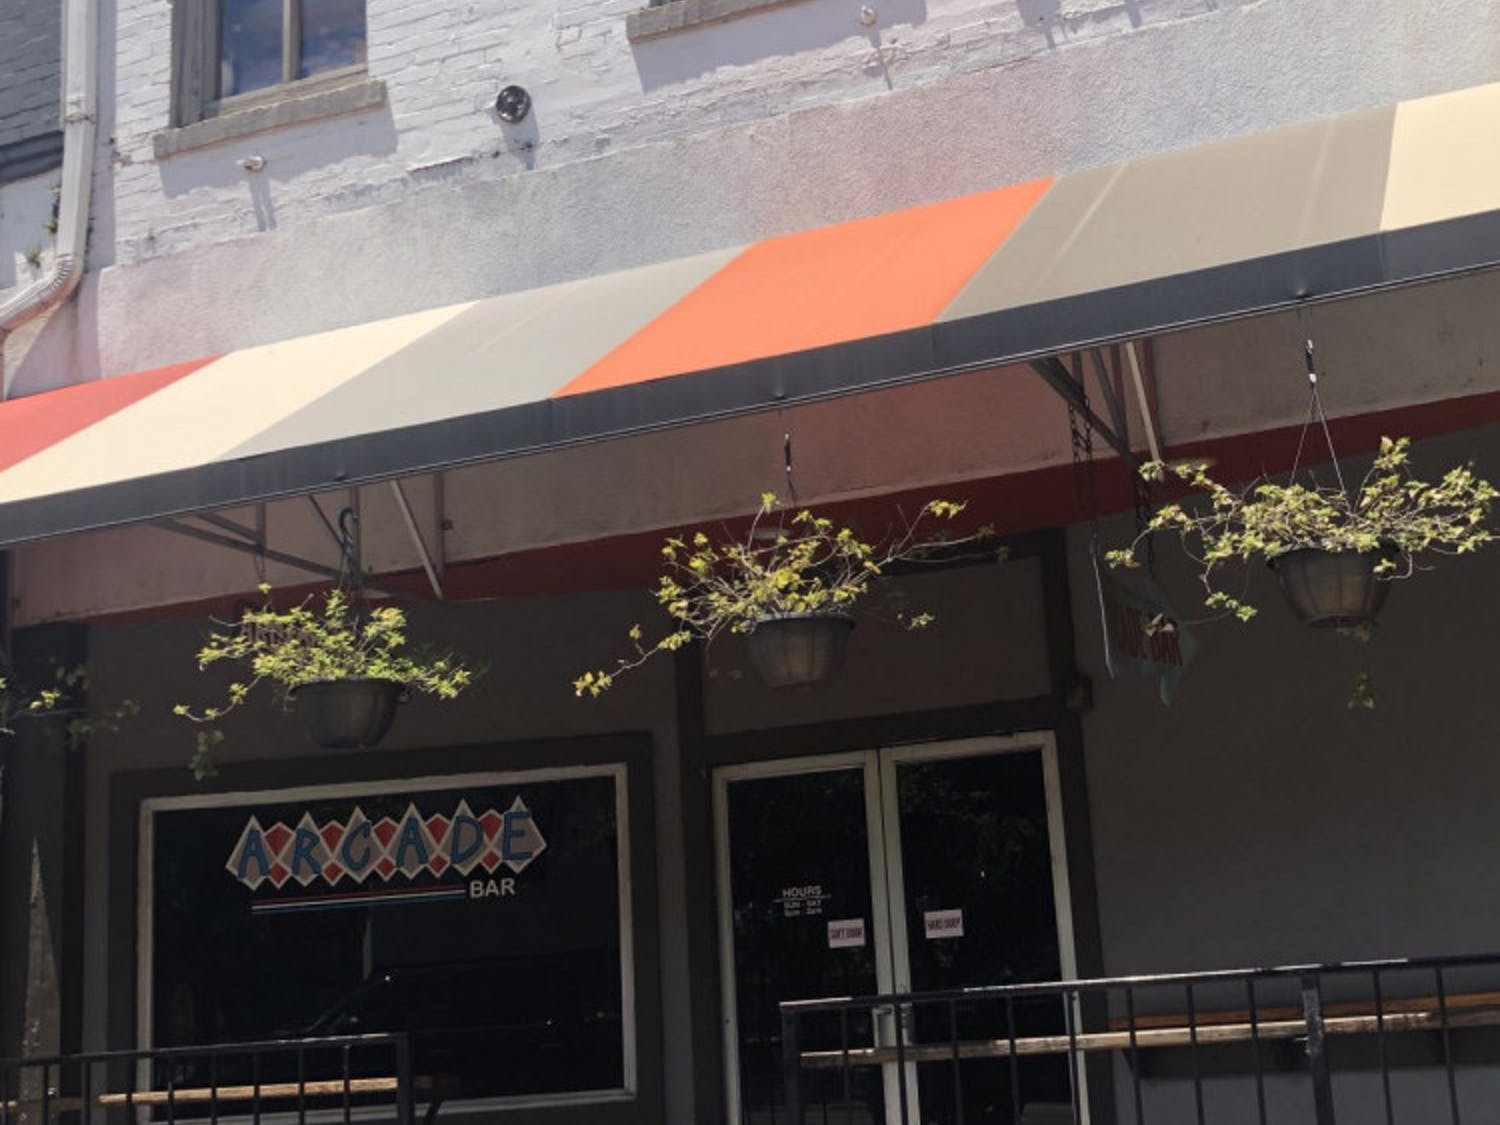 This eclectic bar is located along University Ave. across from the Top.